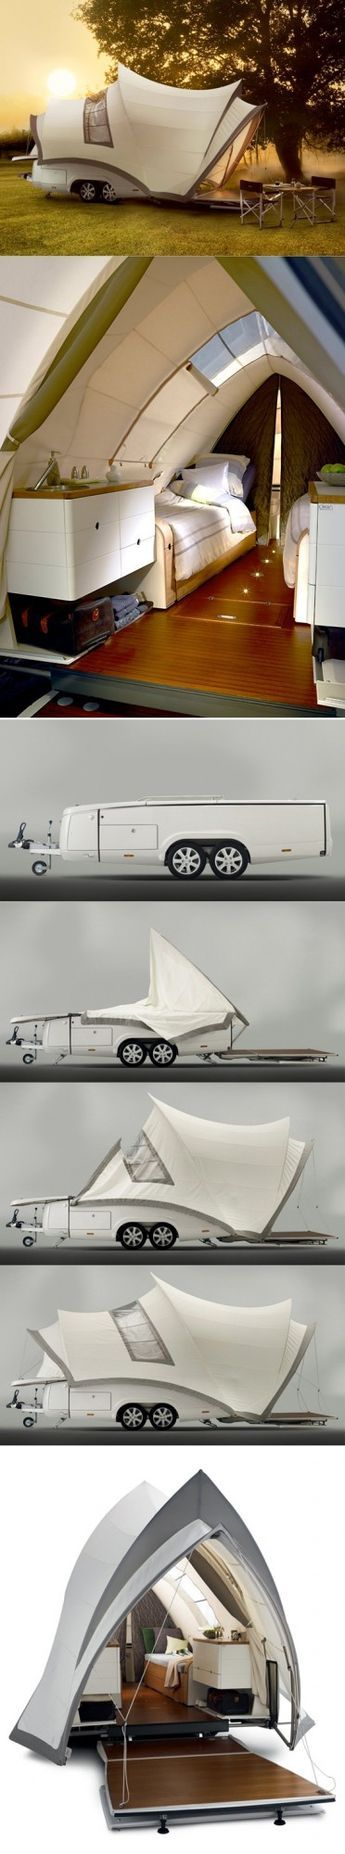 The Opera Pop Up Camper: Lightweight Expanding Travel Trailer.  I love this thing!